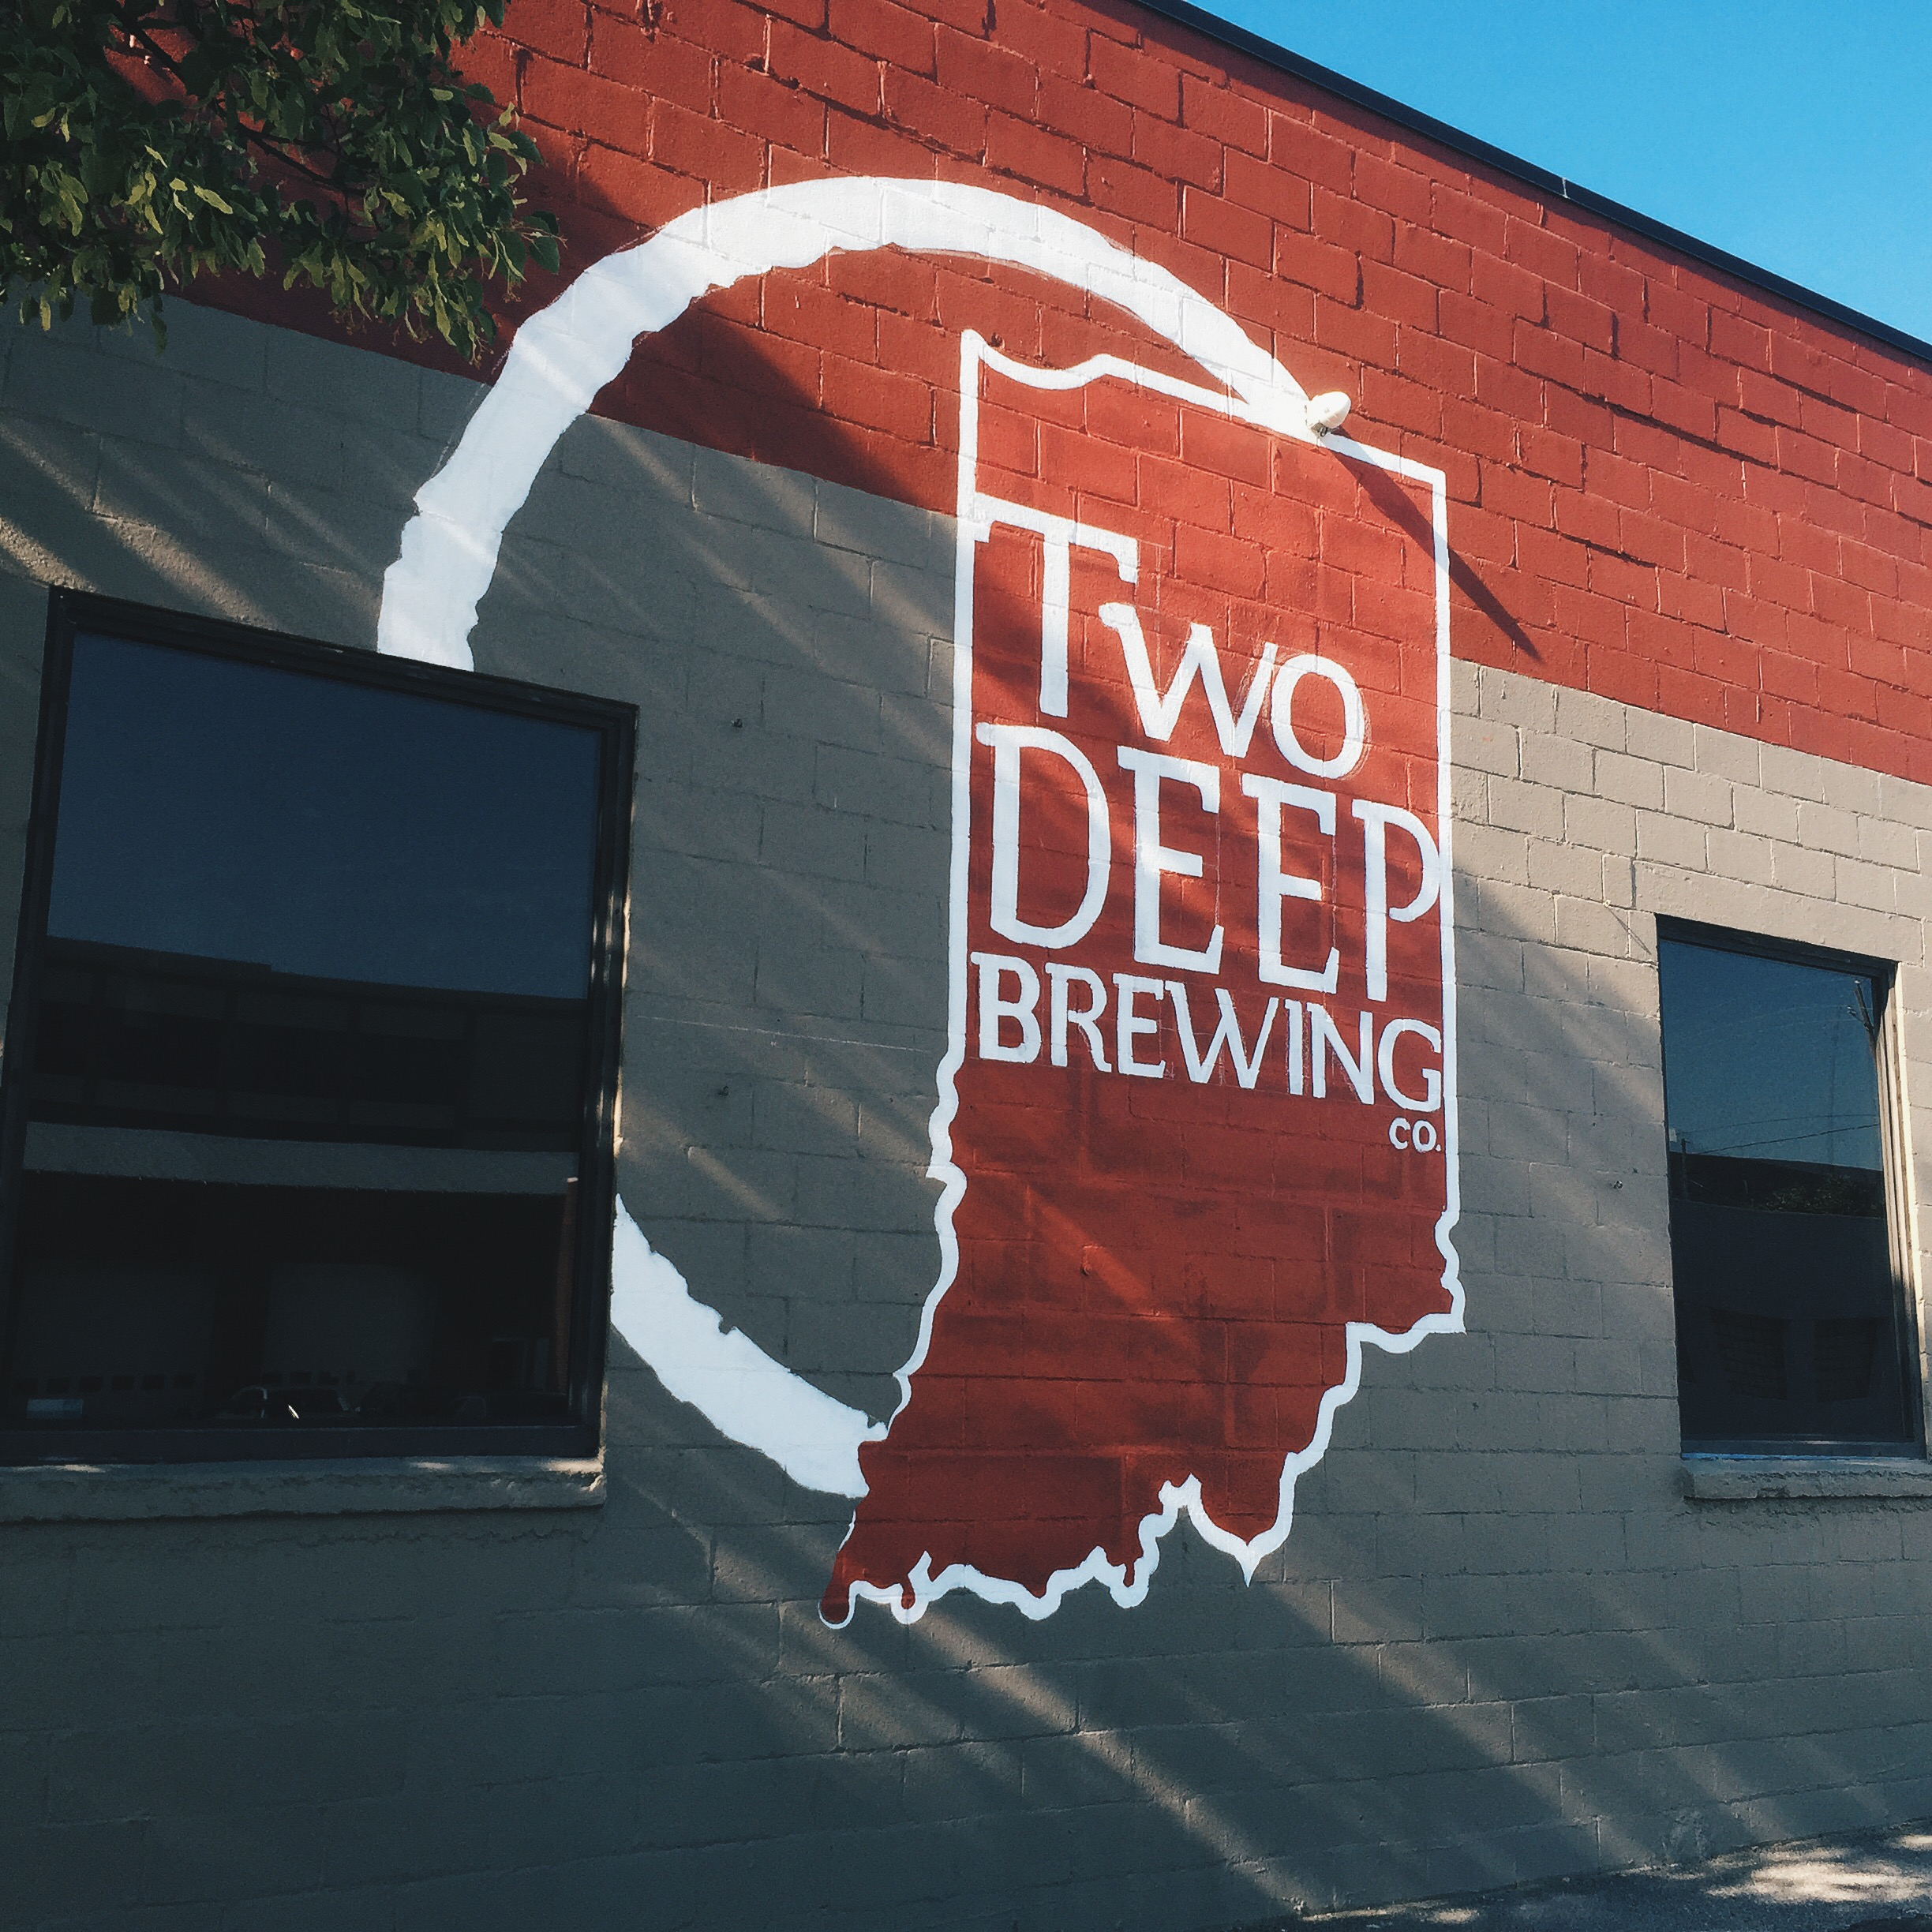 book the TapRoom for an event   Start making your guest list! Hosting your next meeting or event in the TwoDEEP TapRoom is a breeze! Click here to view our accommodations and drink packages.